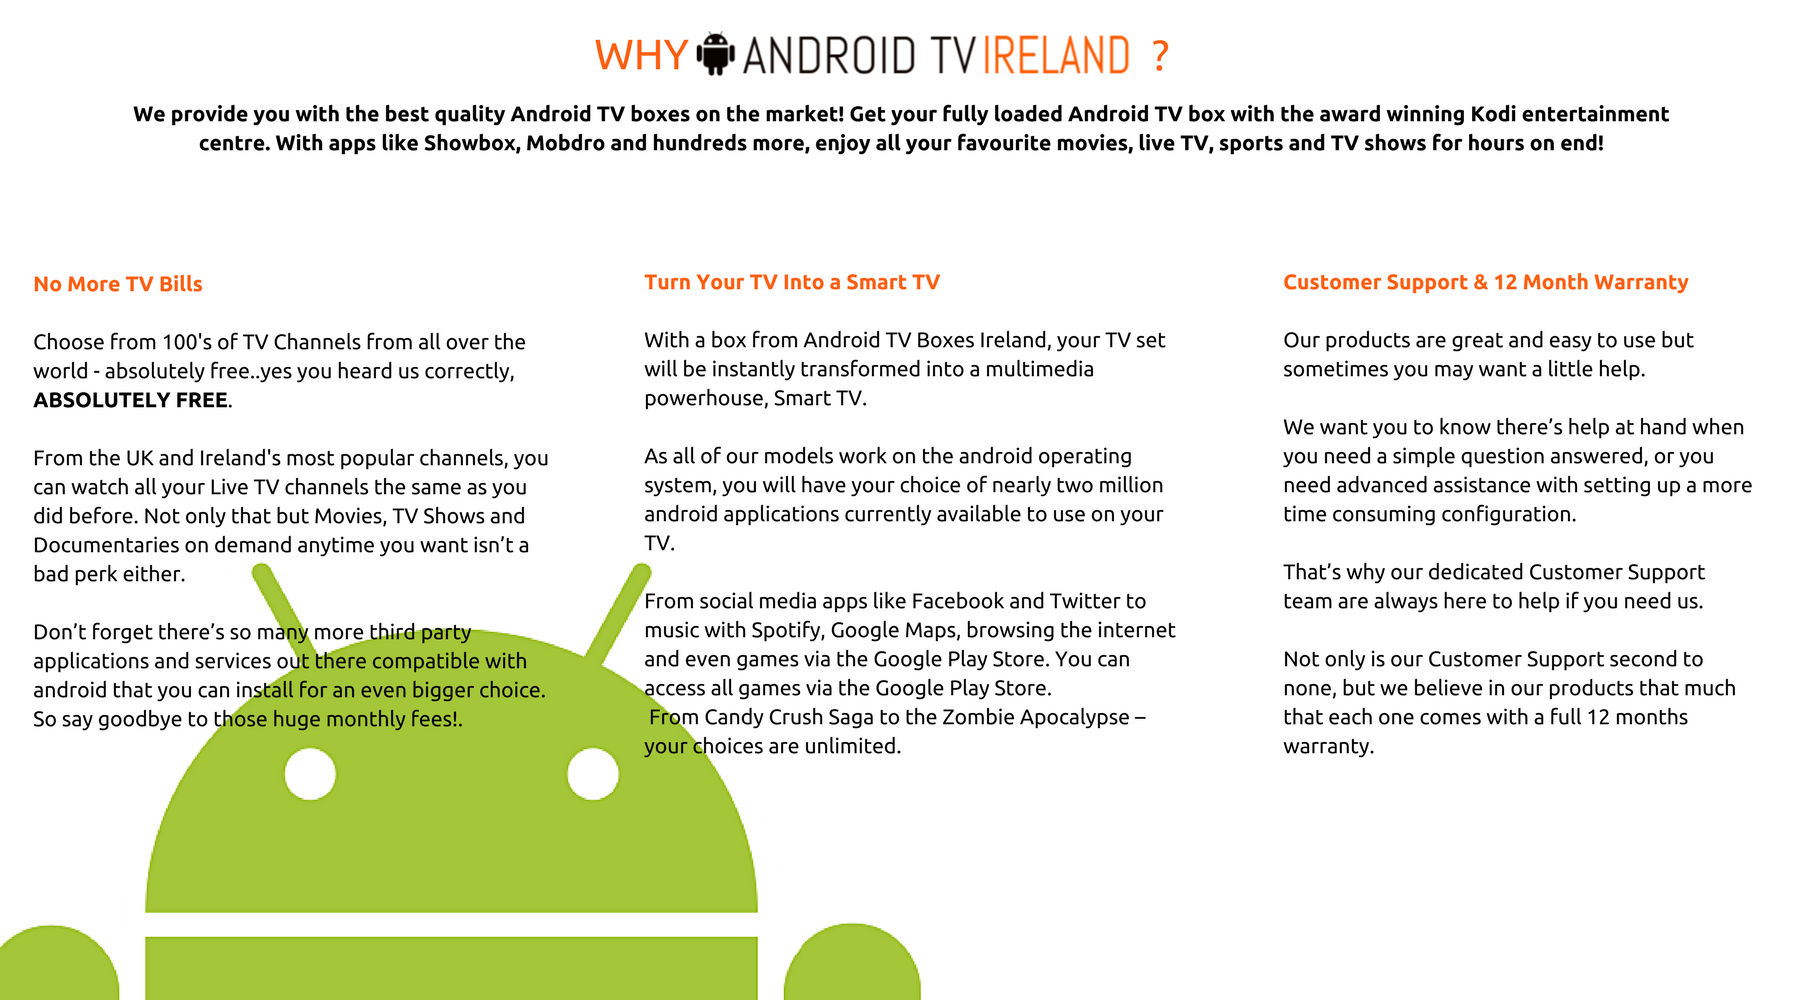 WHY ANDROID TV IRELAND?  No More TV Bills   Choose from 100's of TV Channels from all over the world - absolutely free..yes you heard us correctly, ABSOLUTELY FREE.   From the UK and Ireland's most popular channels, you can watch all your Live TV channels the same as you did before. Not only that but Movies, TV Shows and Documentaries on demand anytime you want isn't a bad perk either.   Don't forget there's so many more third party applications and services out there compatible with android that you can install for an even bigger choice. So say goodbye to those huge monthly fees!     Turn Your TV Into a Smart TV  With a box from Android TV Boxes Ireland, your TV set will be instantly transformed into a multimedia powerhouse, Smart TV.   As all of our models work on the android operating system, you will have your choice of nearly two million android applications currently available to use on your TV.   From social media apps like Facebook and Twitter to music with Spotify, Google Maps, browsing the internet and even games via the Google Play Store. You can access all games via the Google Play Store.  From Candy Crush Saga to the Zombie Apocalypse – your choices are unlimited.     Customer Support & 12 Month Warranty  Our products are great and easy to use but sometimes you may want a little help.   We want you to know there's help at hand when you need a simple question answered, or you need advanced assistance with setting up a more time consuming configuration.   That's why our dedicated Customer Support team are always here to help if you need us.   Not only is our Customer Support second to none, but we believe in our products that much that each one comes with a full 12 months warranty.